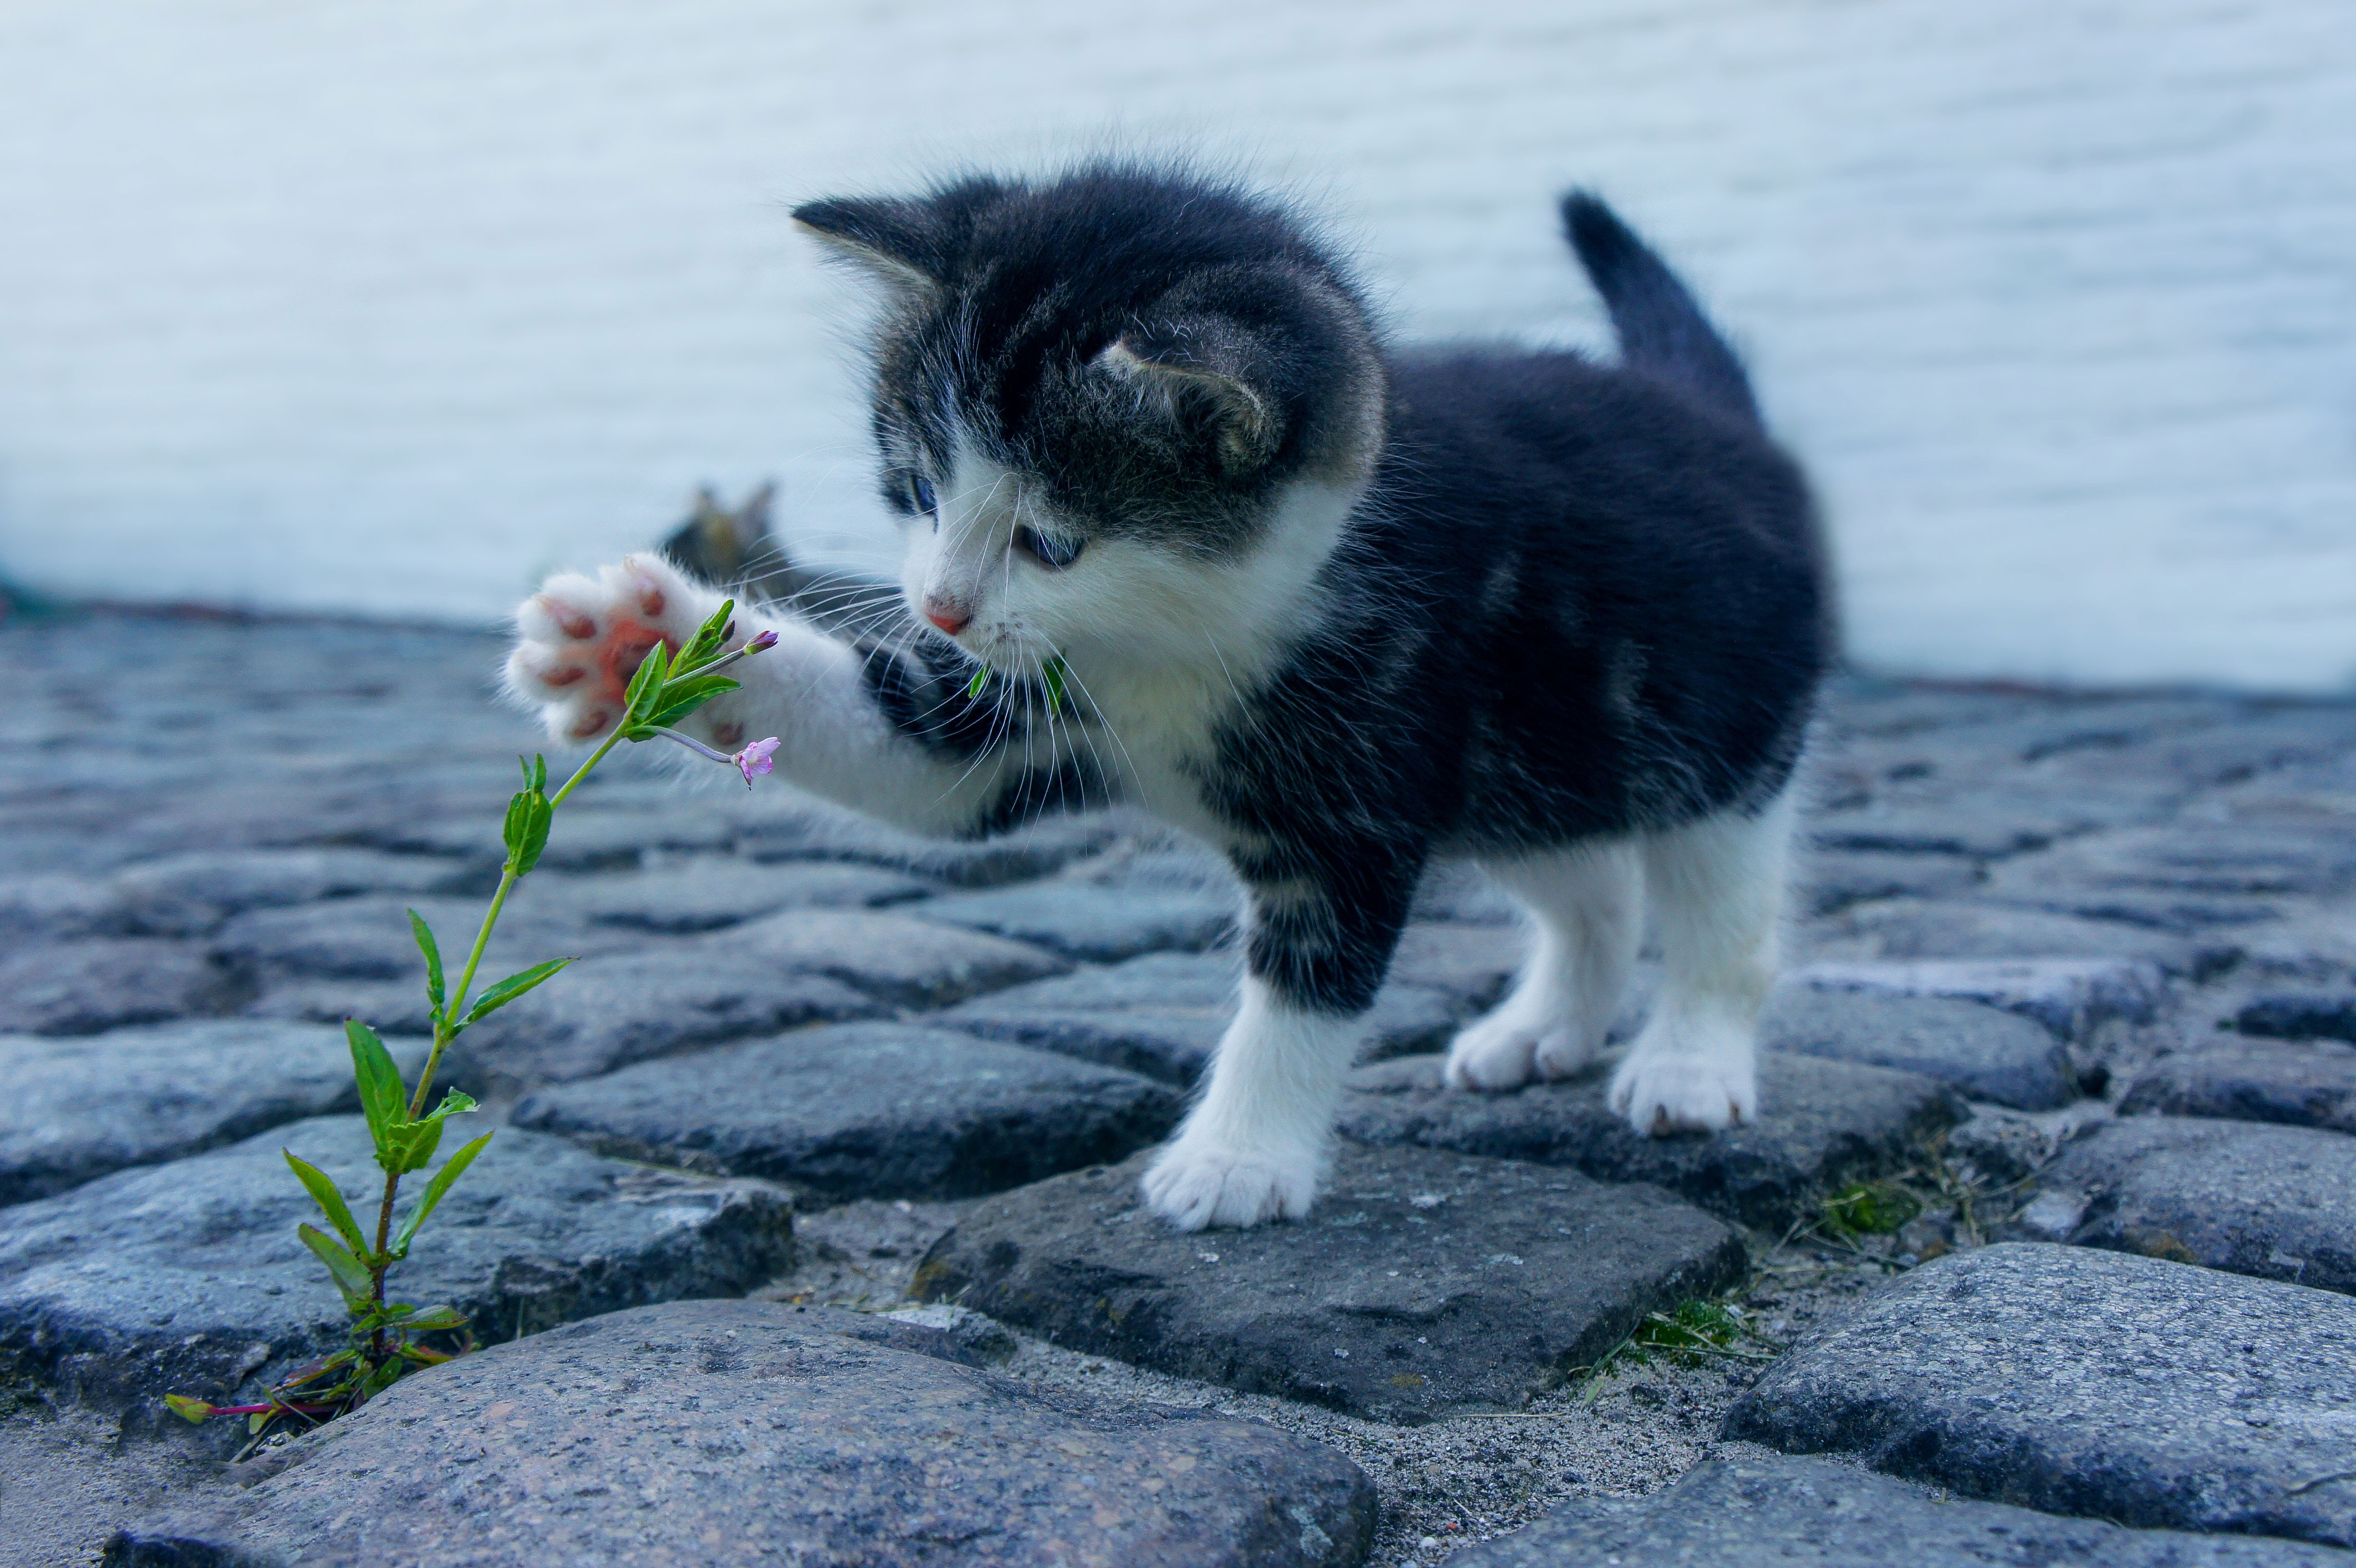 Kitten 4969 with a paw stroking the seedling 55428